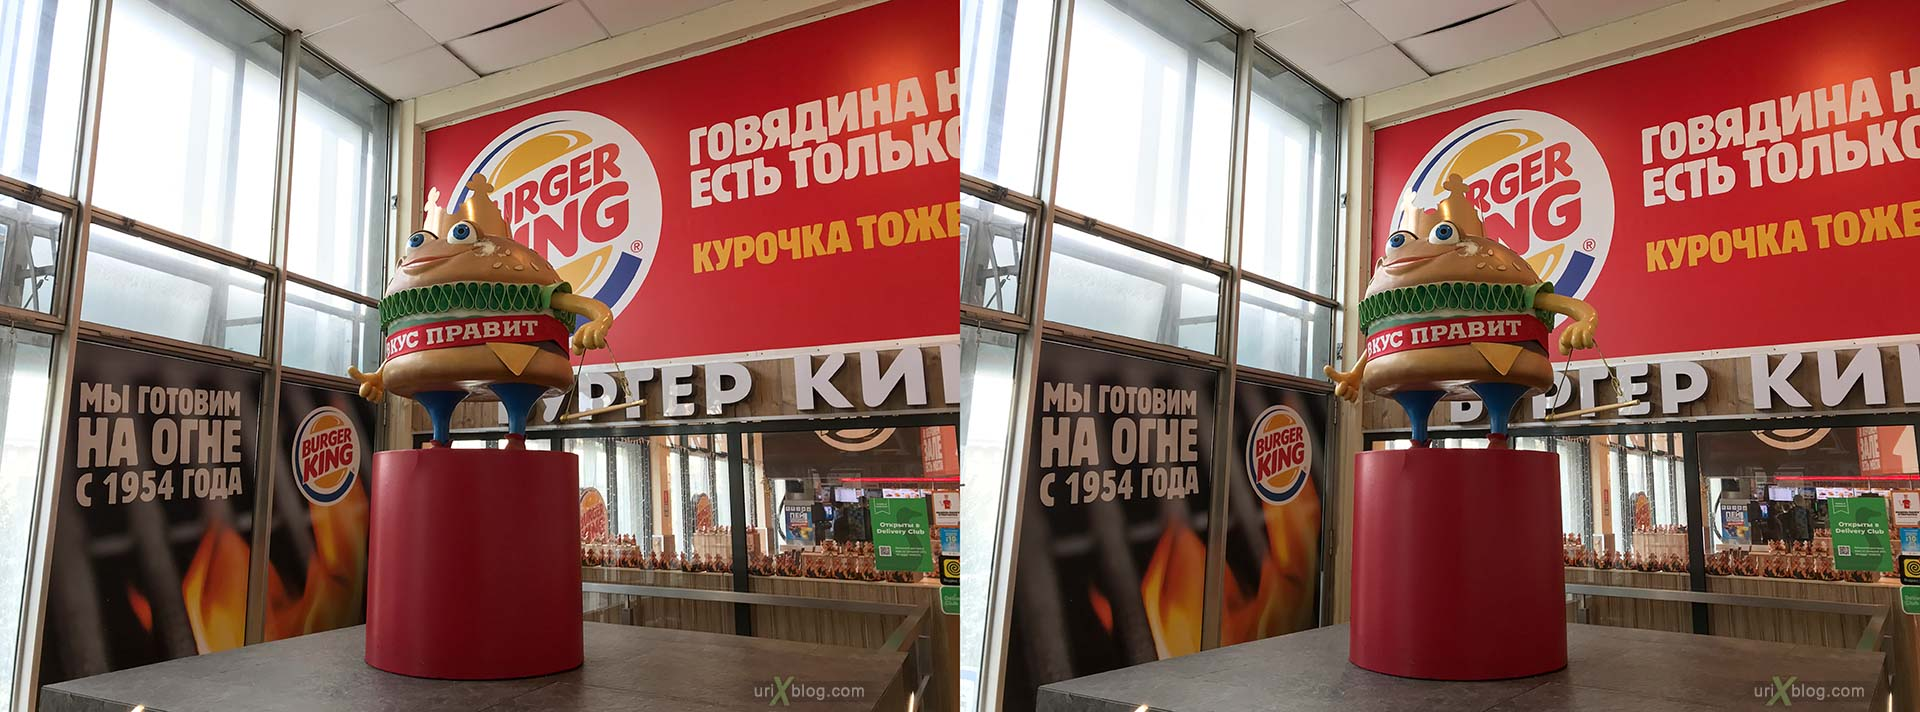 Burger King, Moscow, Russia, 3D, stereo pair, cross-eyed, crossview, cross view stereo pair, stereoscopic